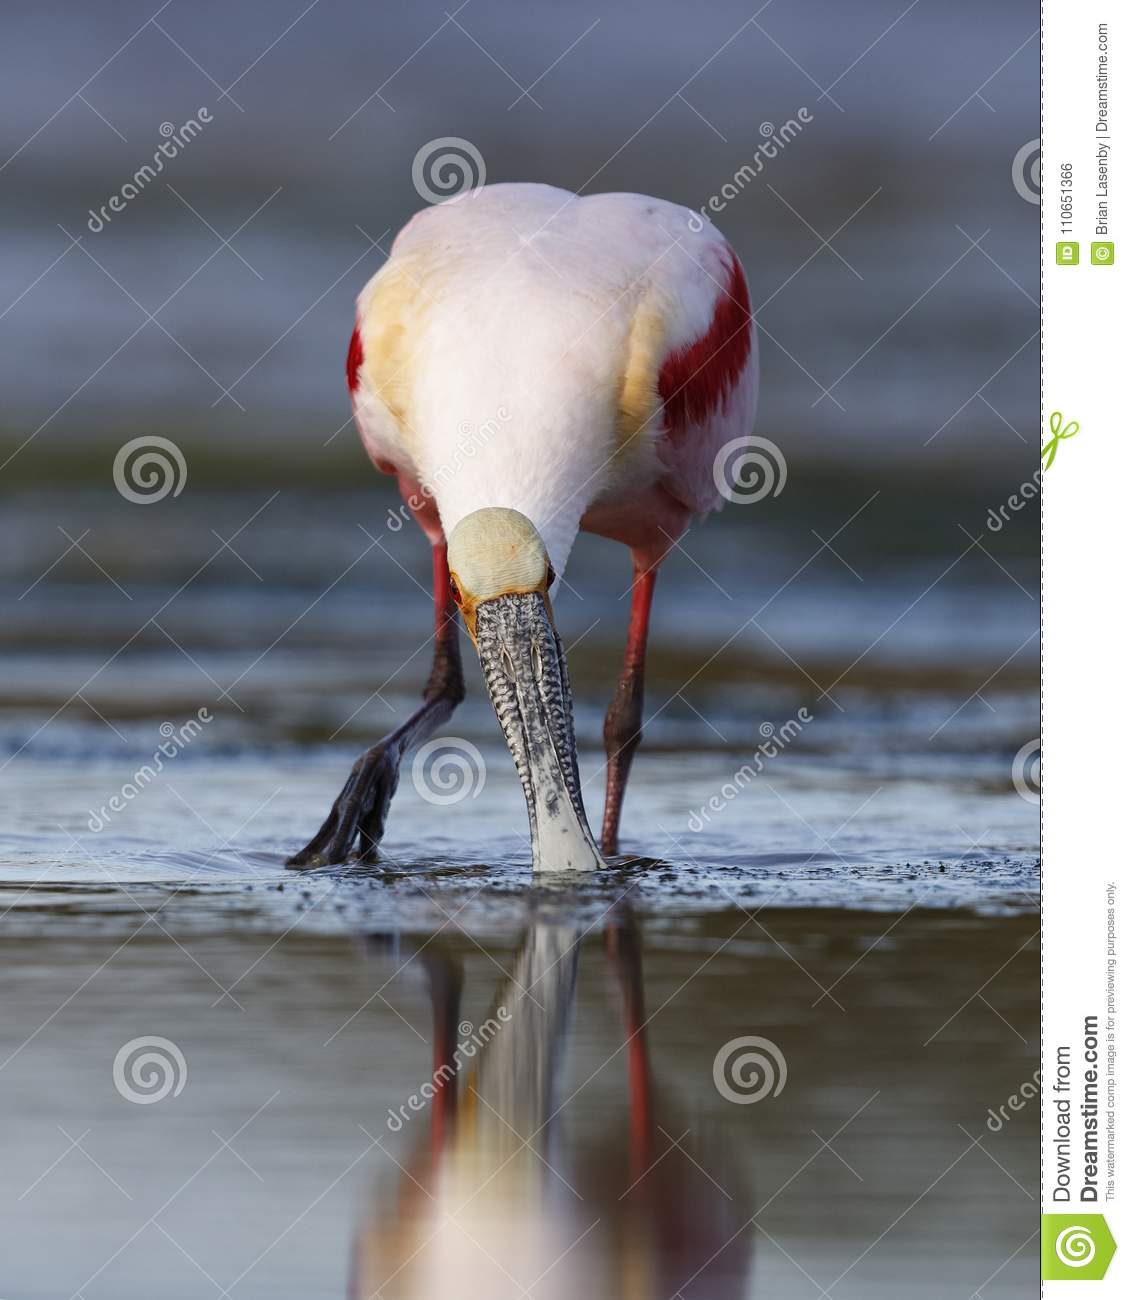 Roseate Spoonbill feeding in a shallow lagoon - Pinellas County, Florida